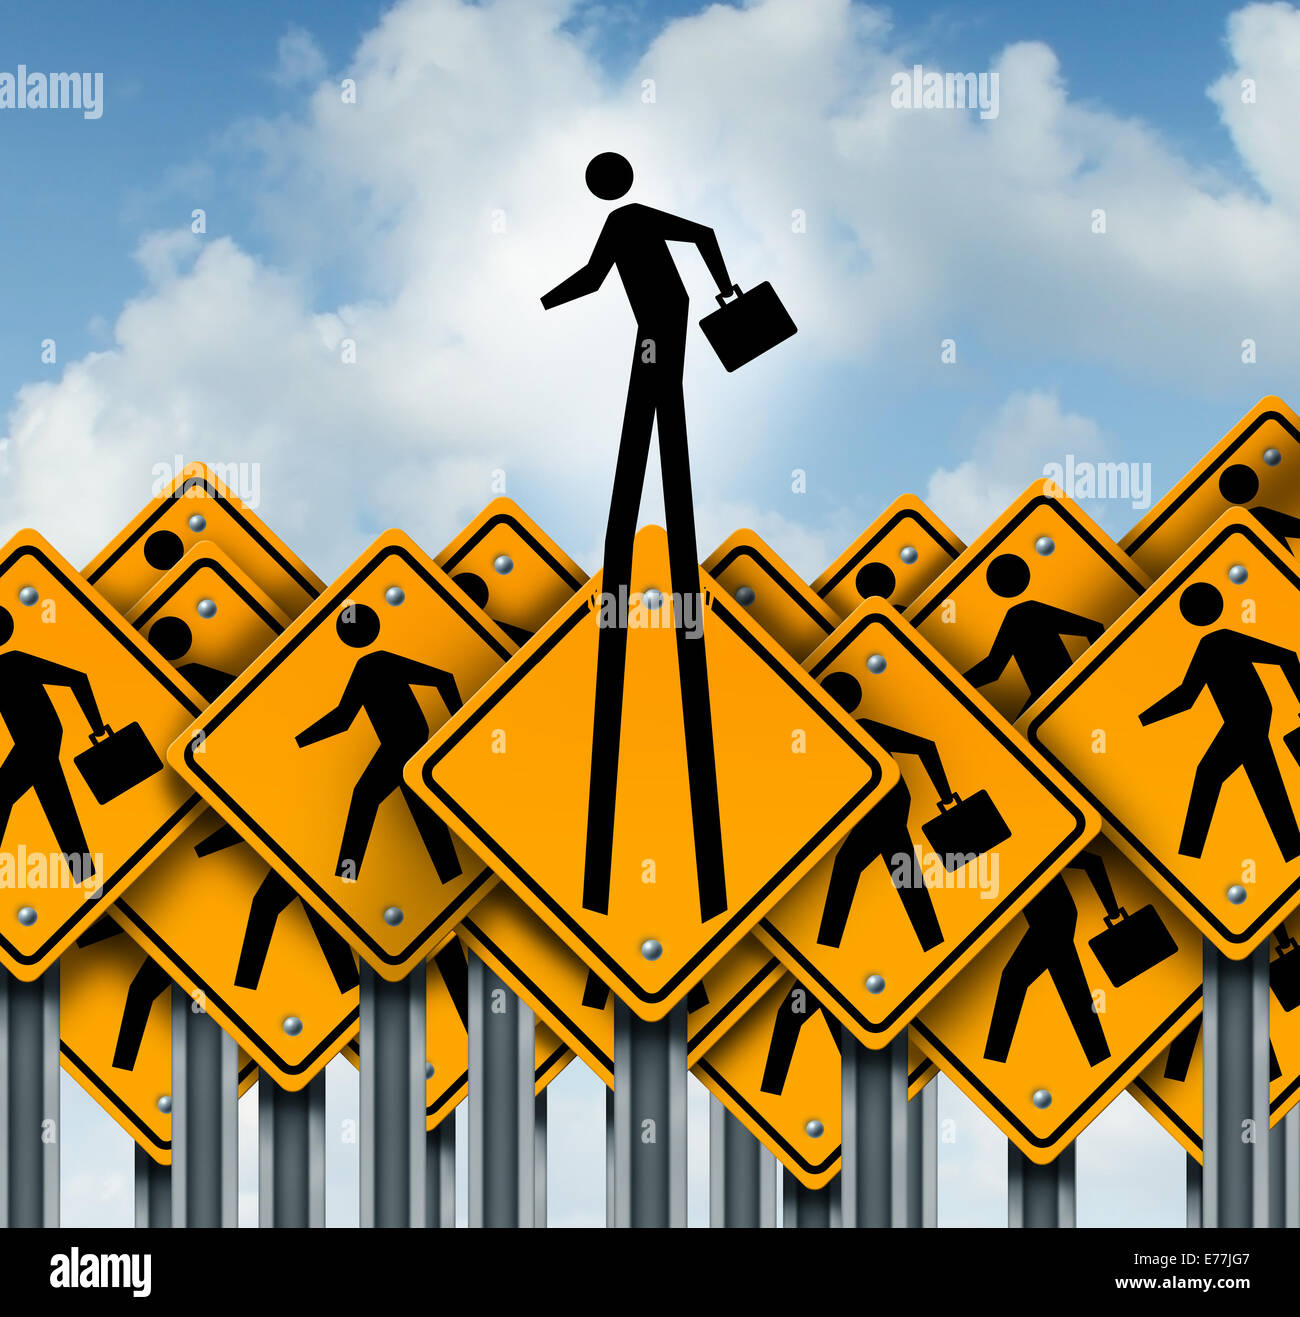 Career success and climb to the top concept as a group of worker crossing traffic signs with one businessman icon - Stock Image